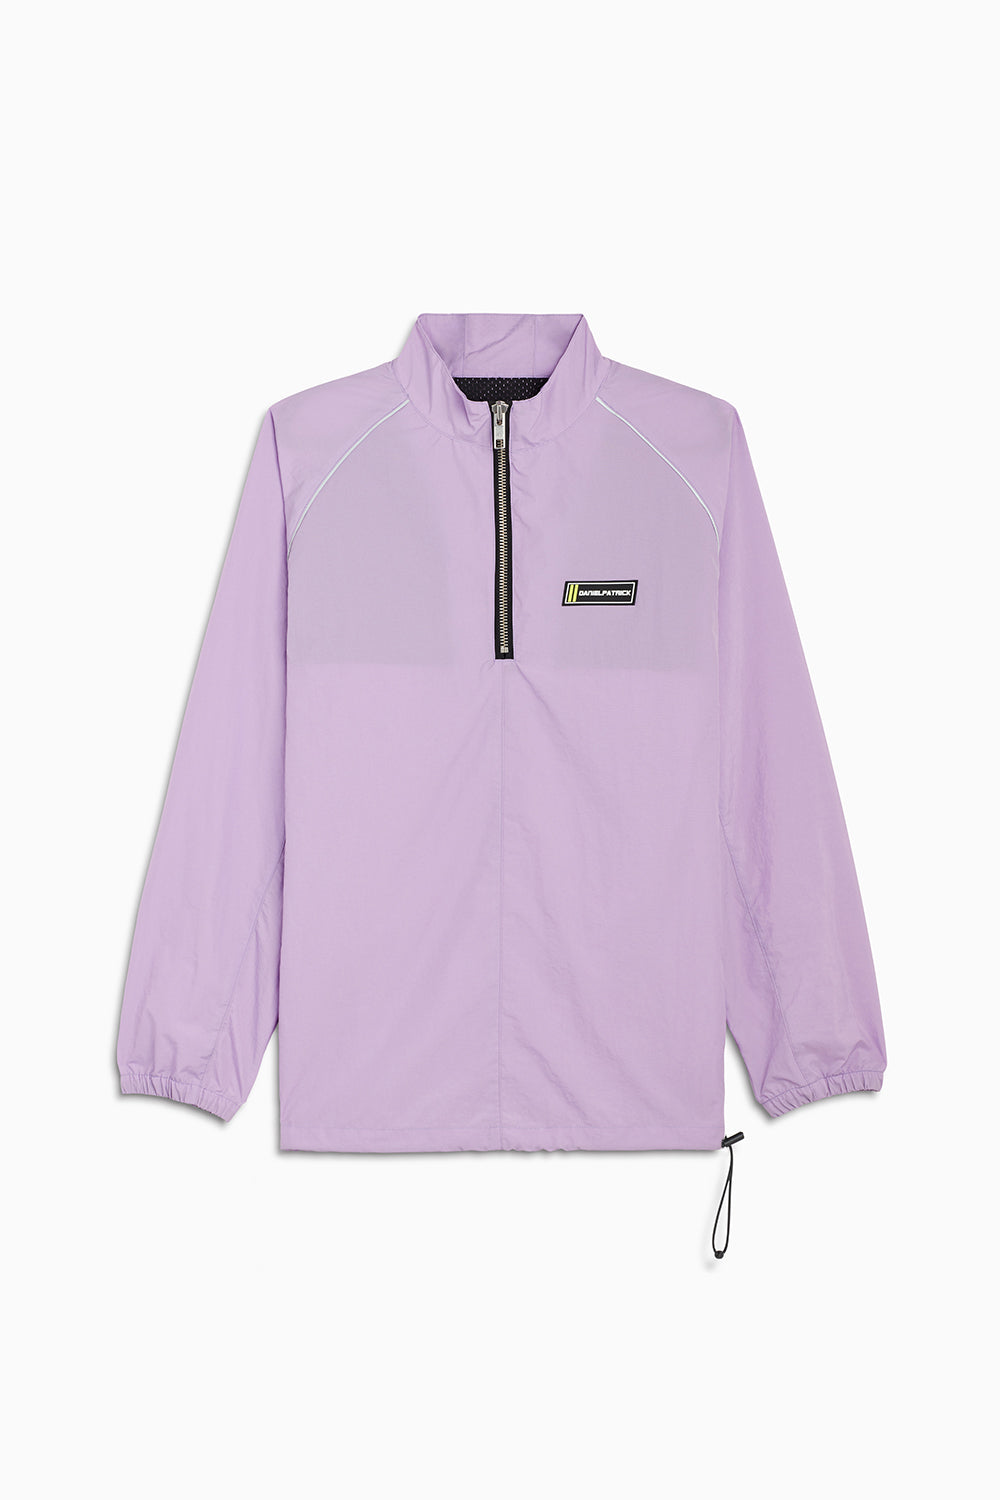 pullover batting jacket / purple haze